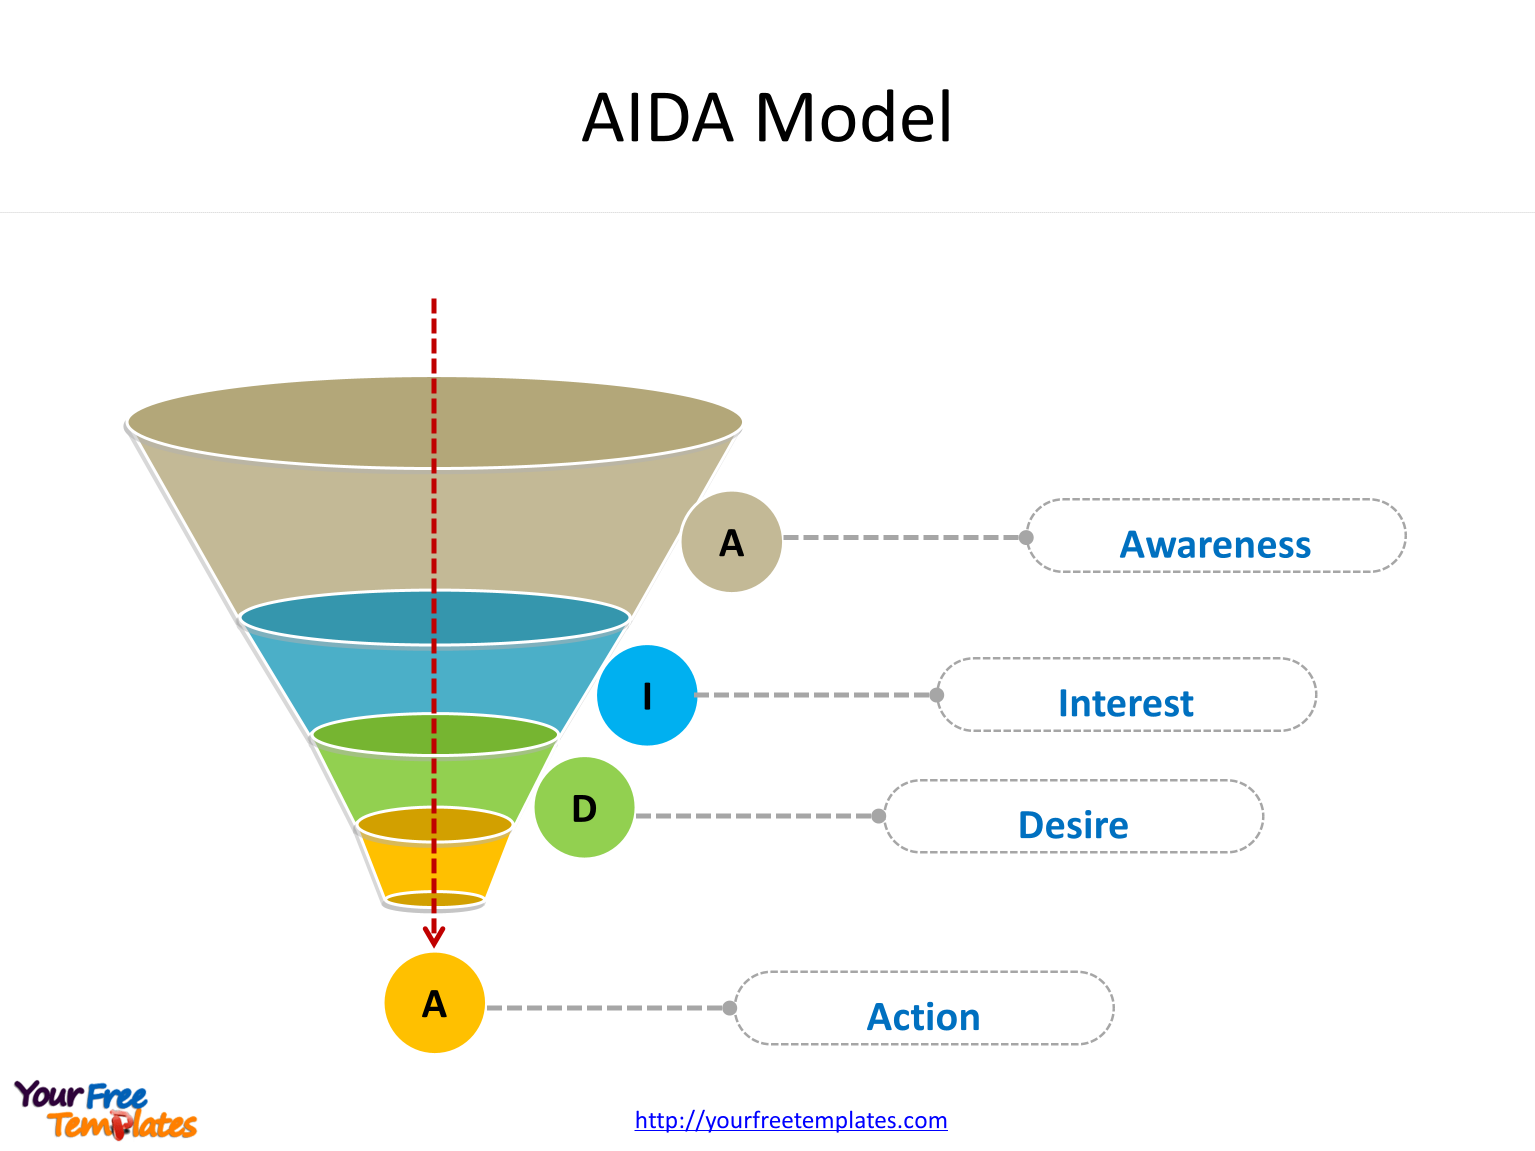 AIDA marketing diagram of Attention, Interest, Desire and Action